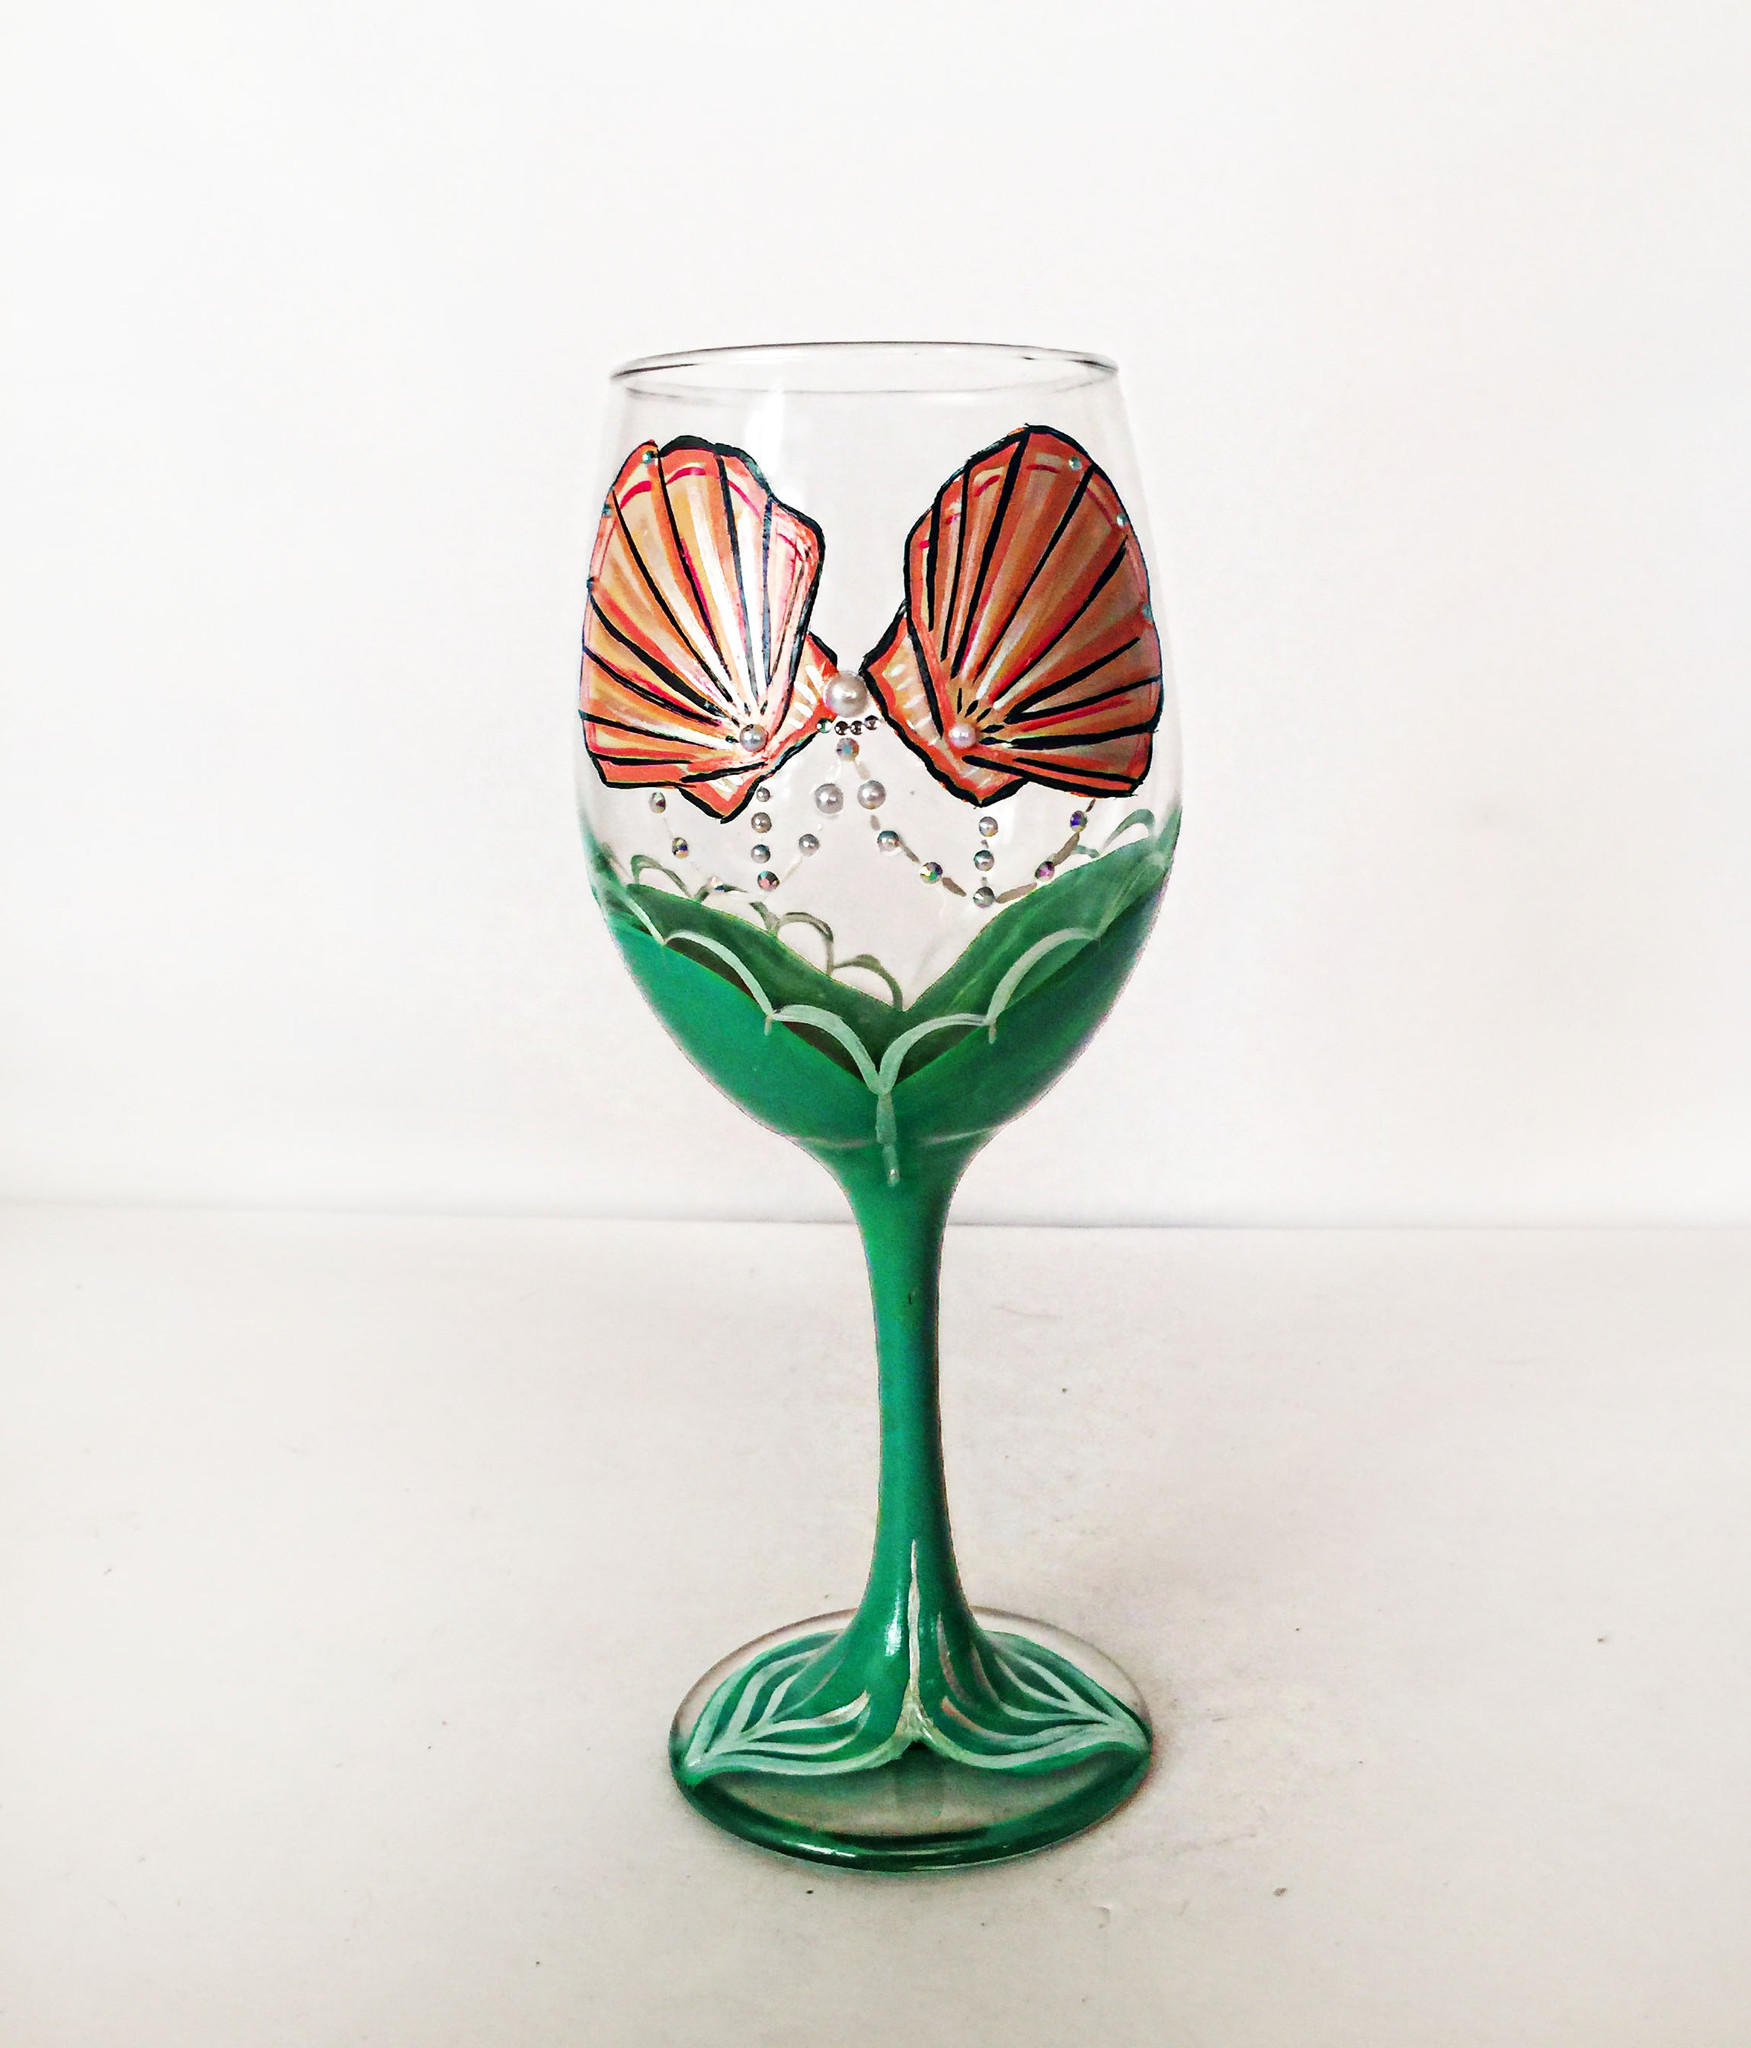 Mermaids wine glass plant bing images